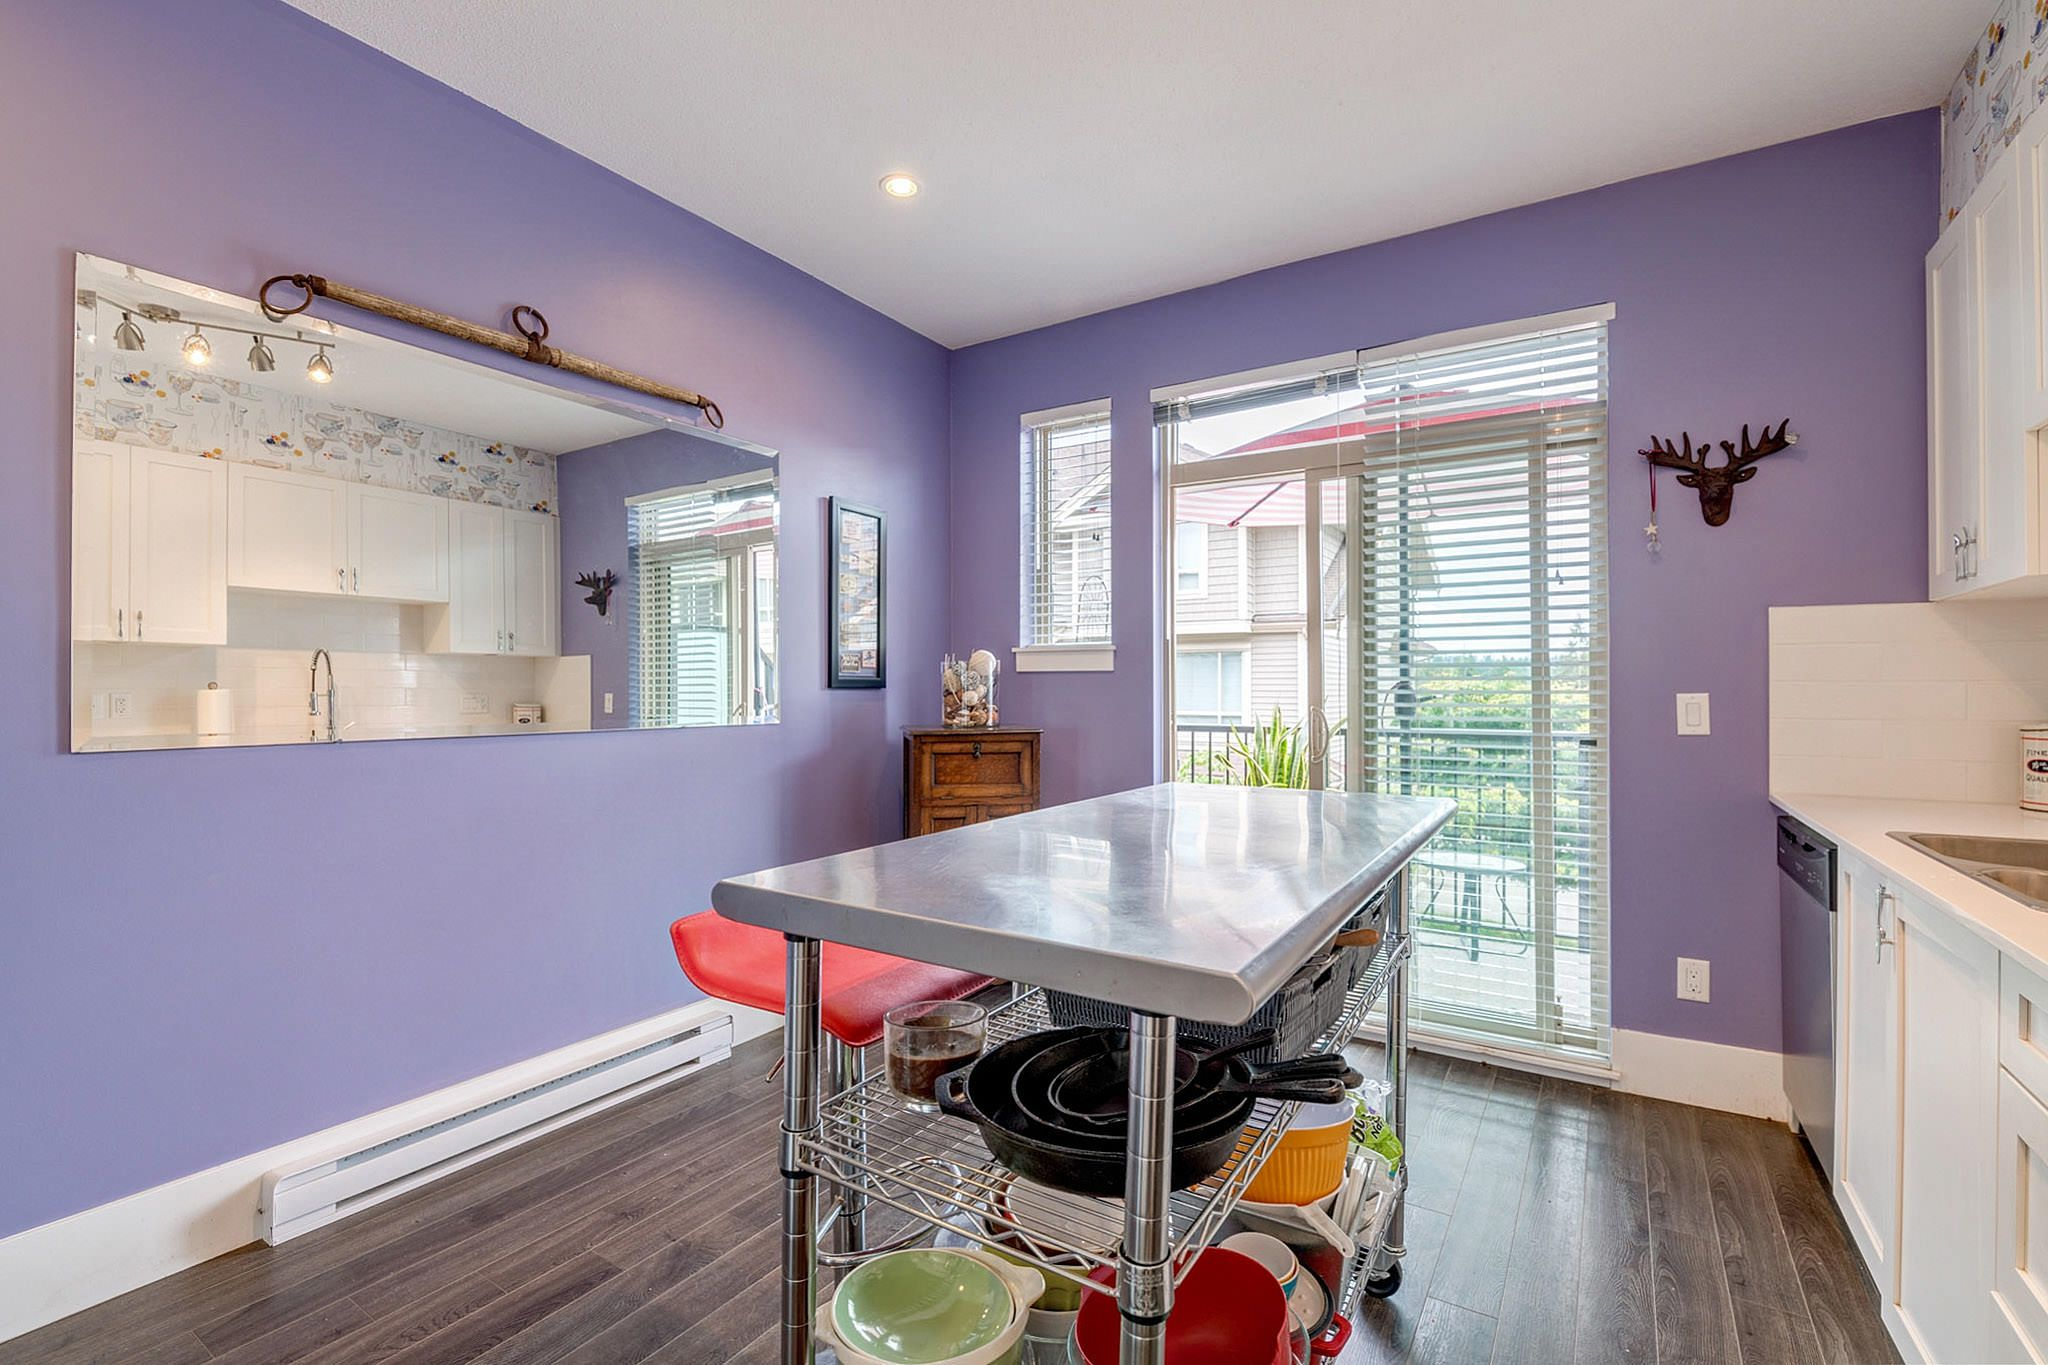 Photo 13: Photos: 10 19742 55A Street in Langley: Langley City Townhouse for sale : MLS®# R2388093